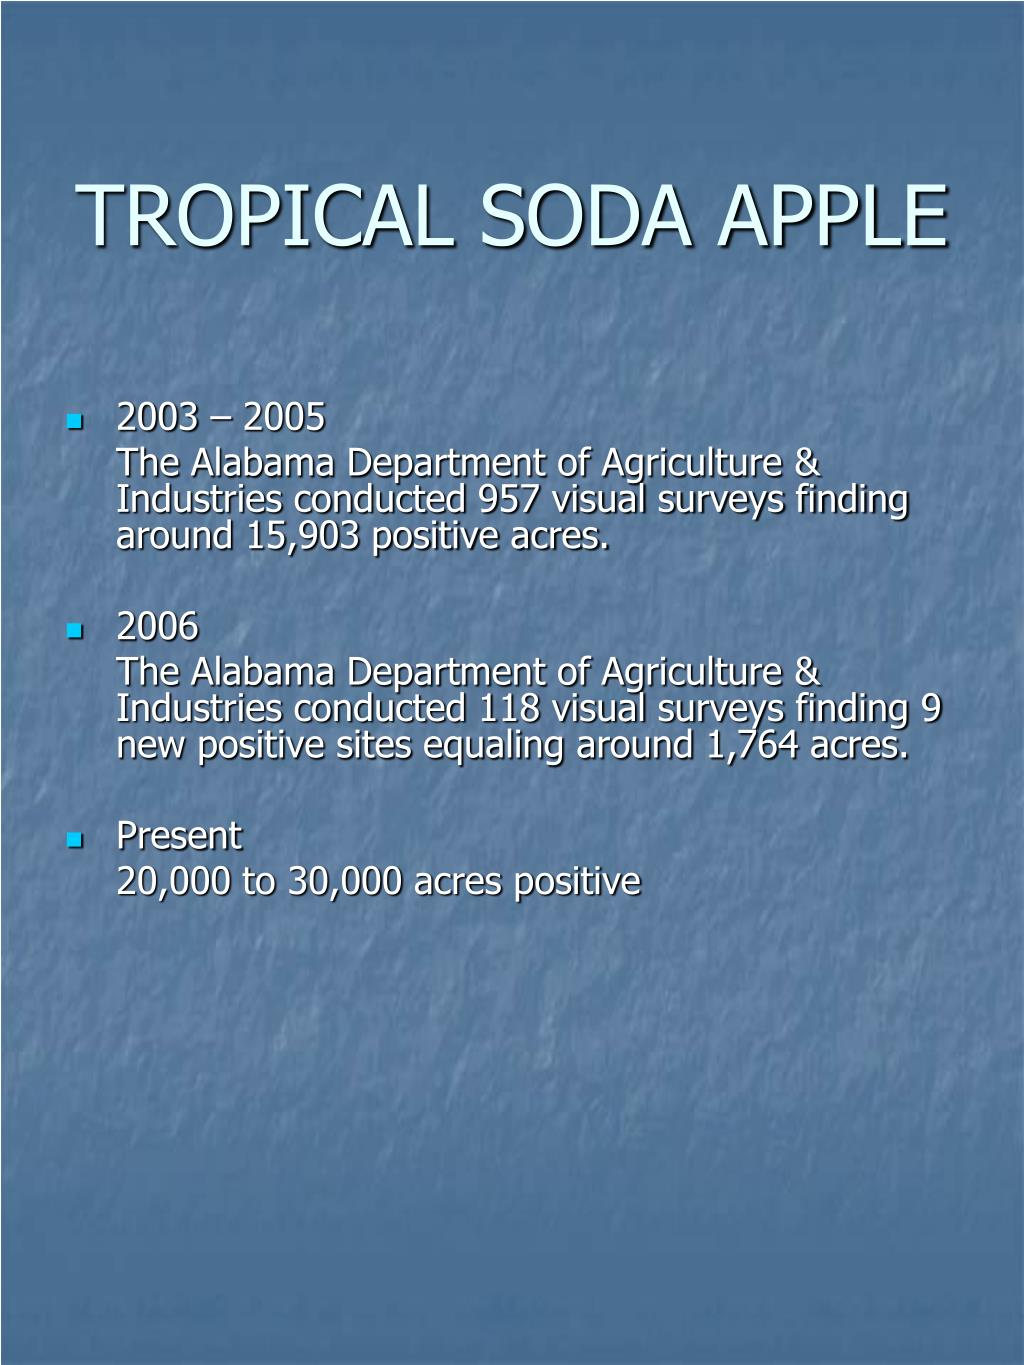 TROPICAL SODA APPLE